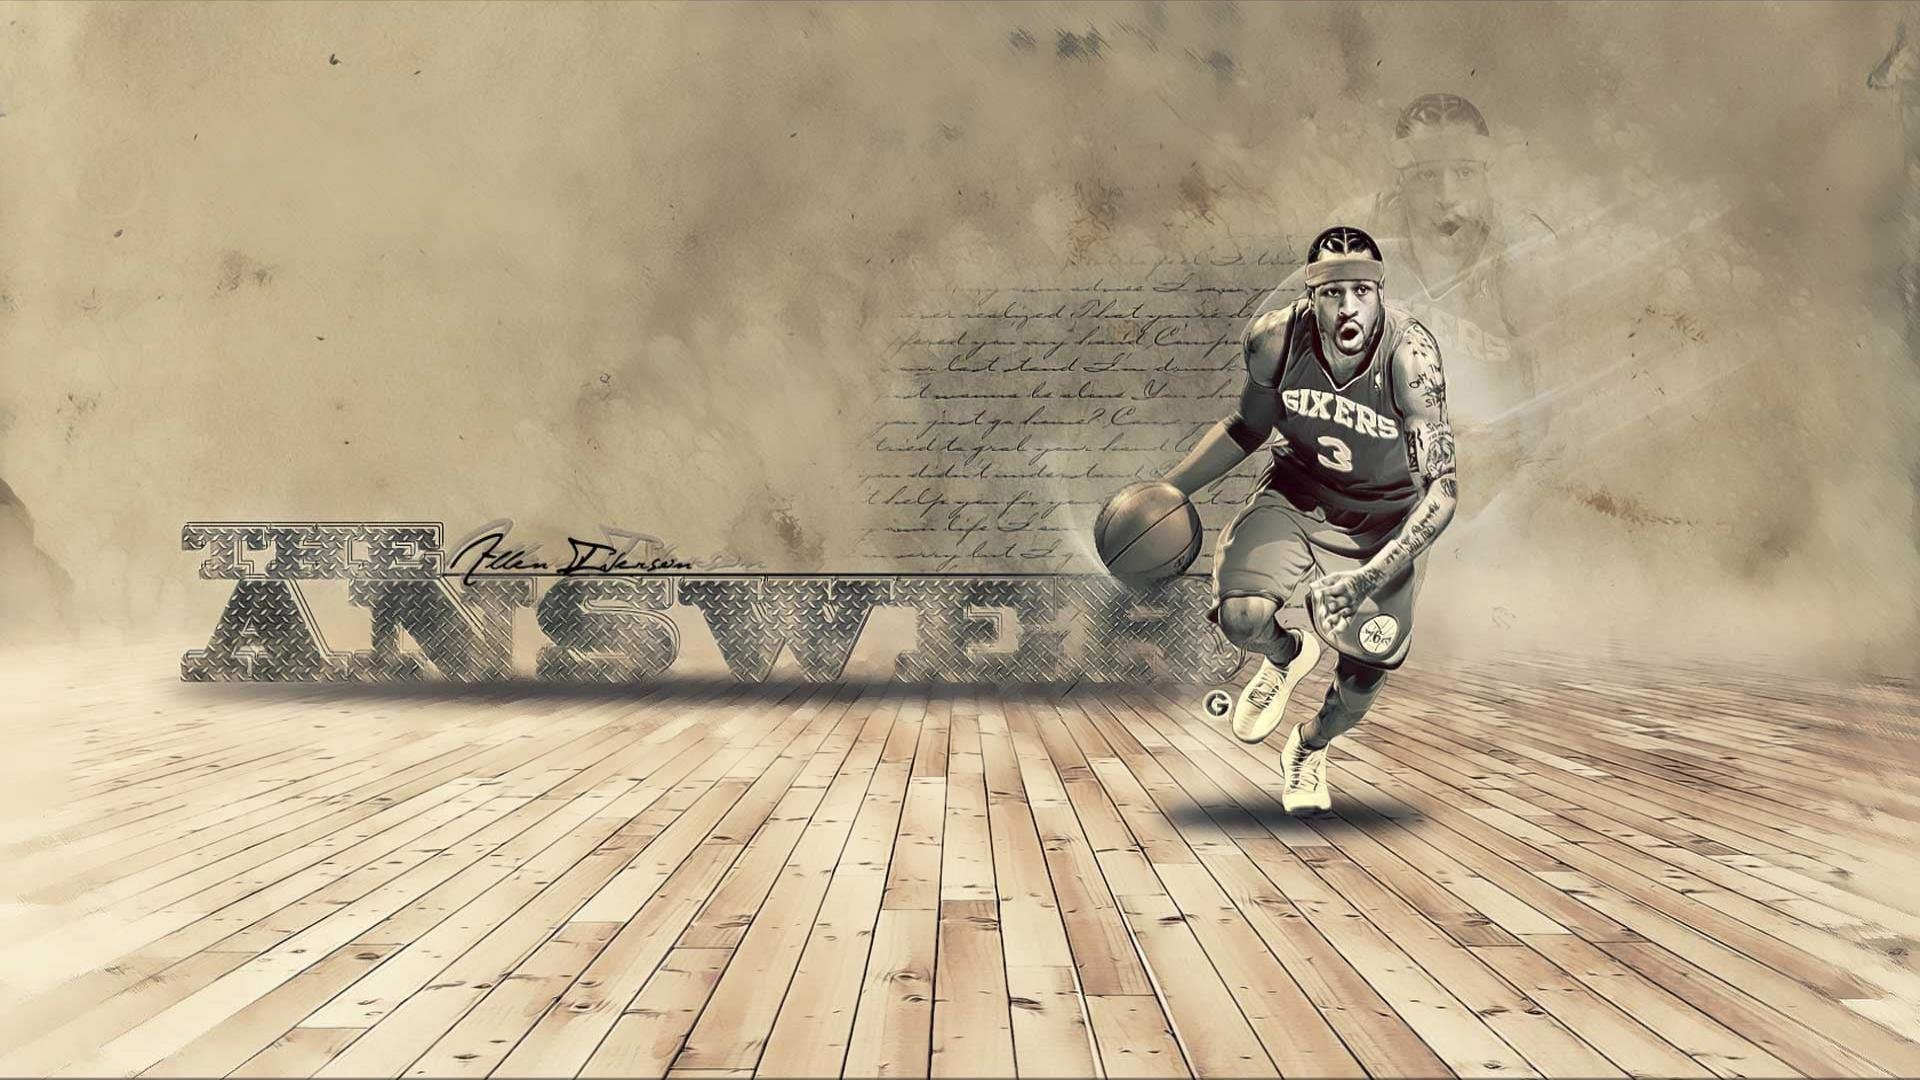 Download 1080p Allen Iverson PC background ID:53354 for free